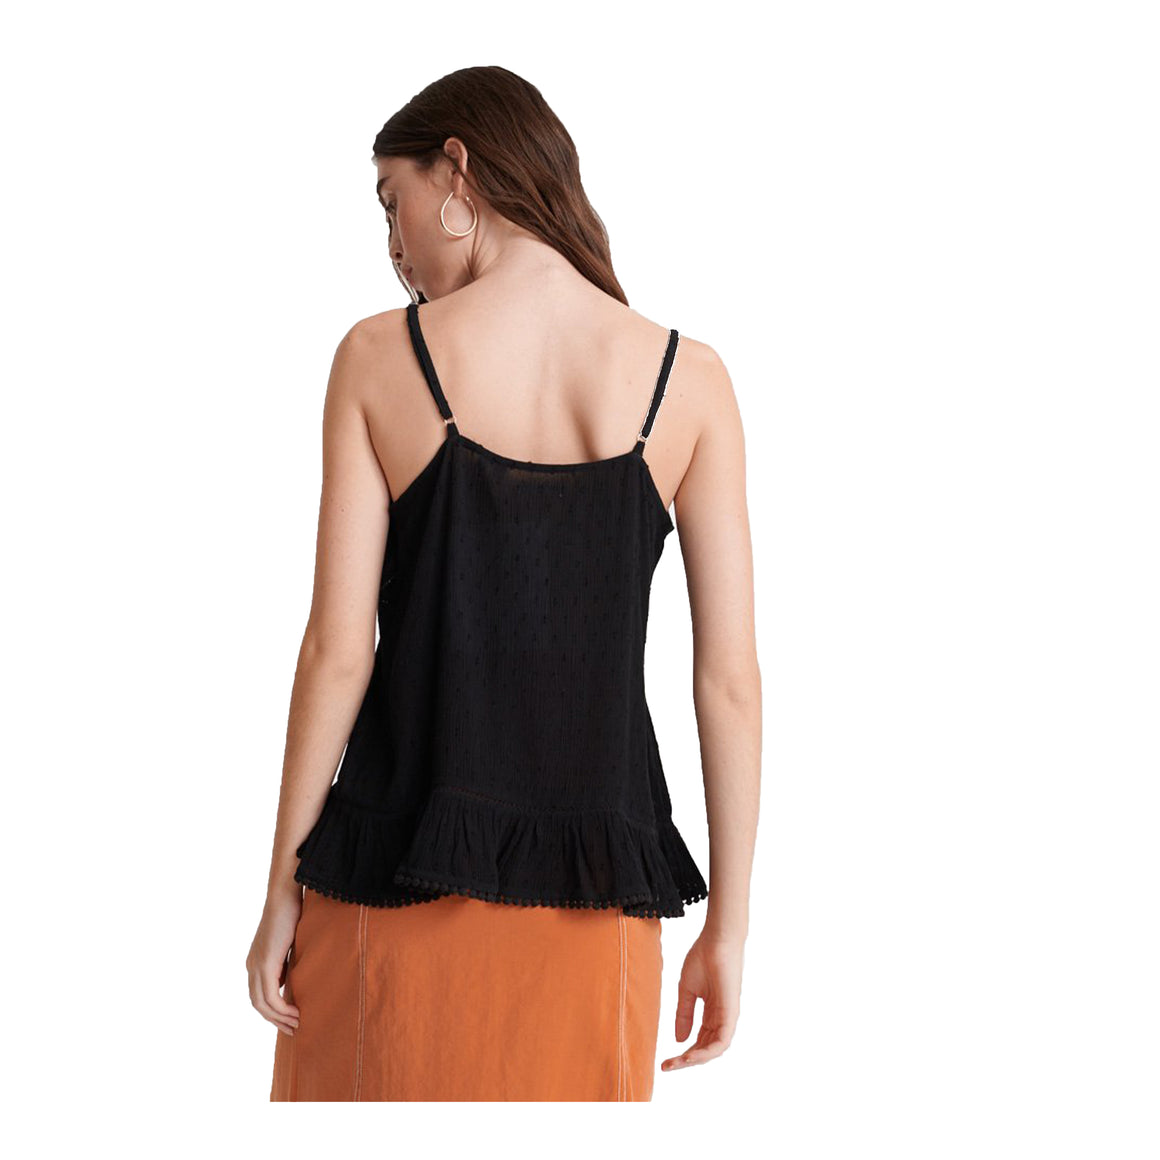 Summer Lace Cami for Women in Black